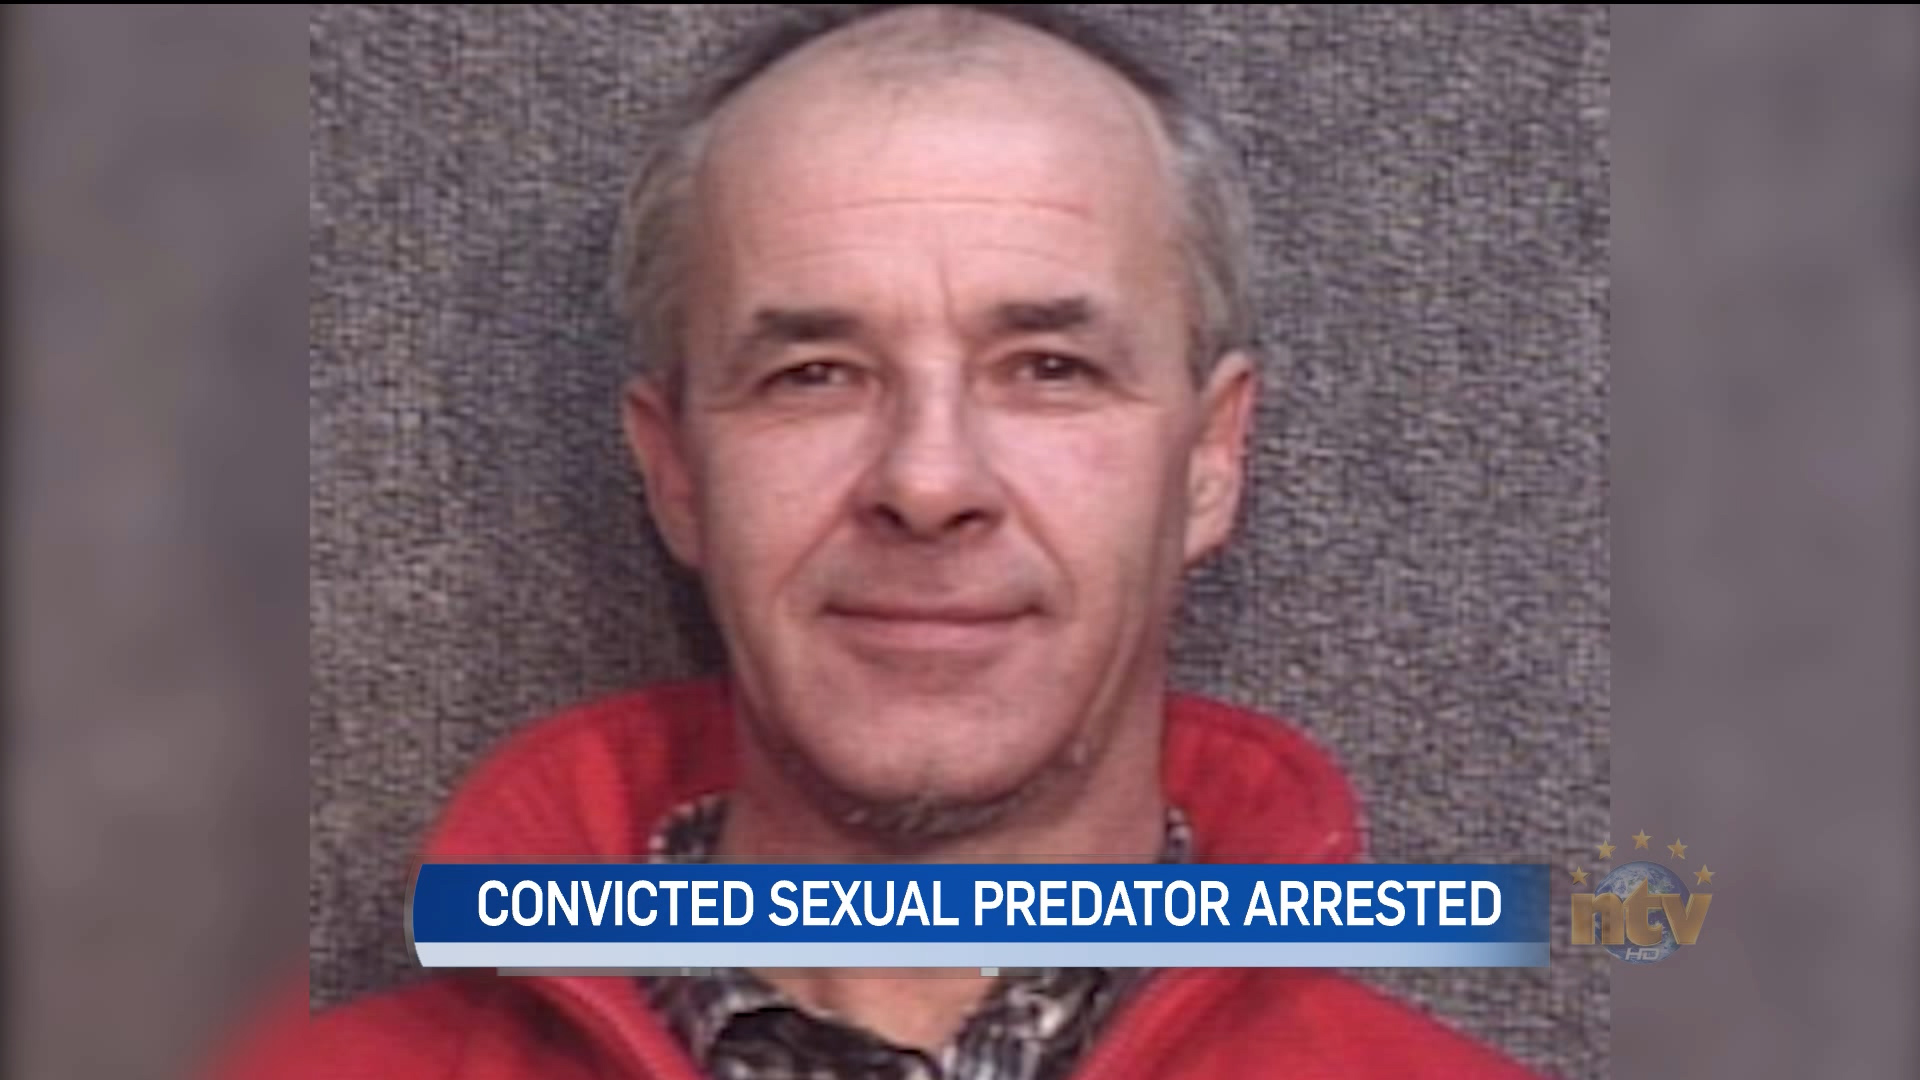 60-year-old Paradise man charged with assaulting woman